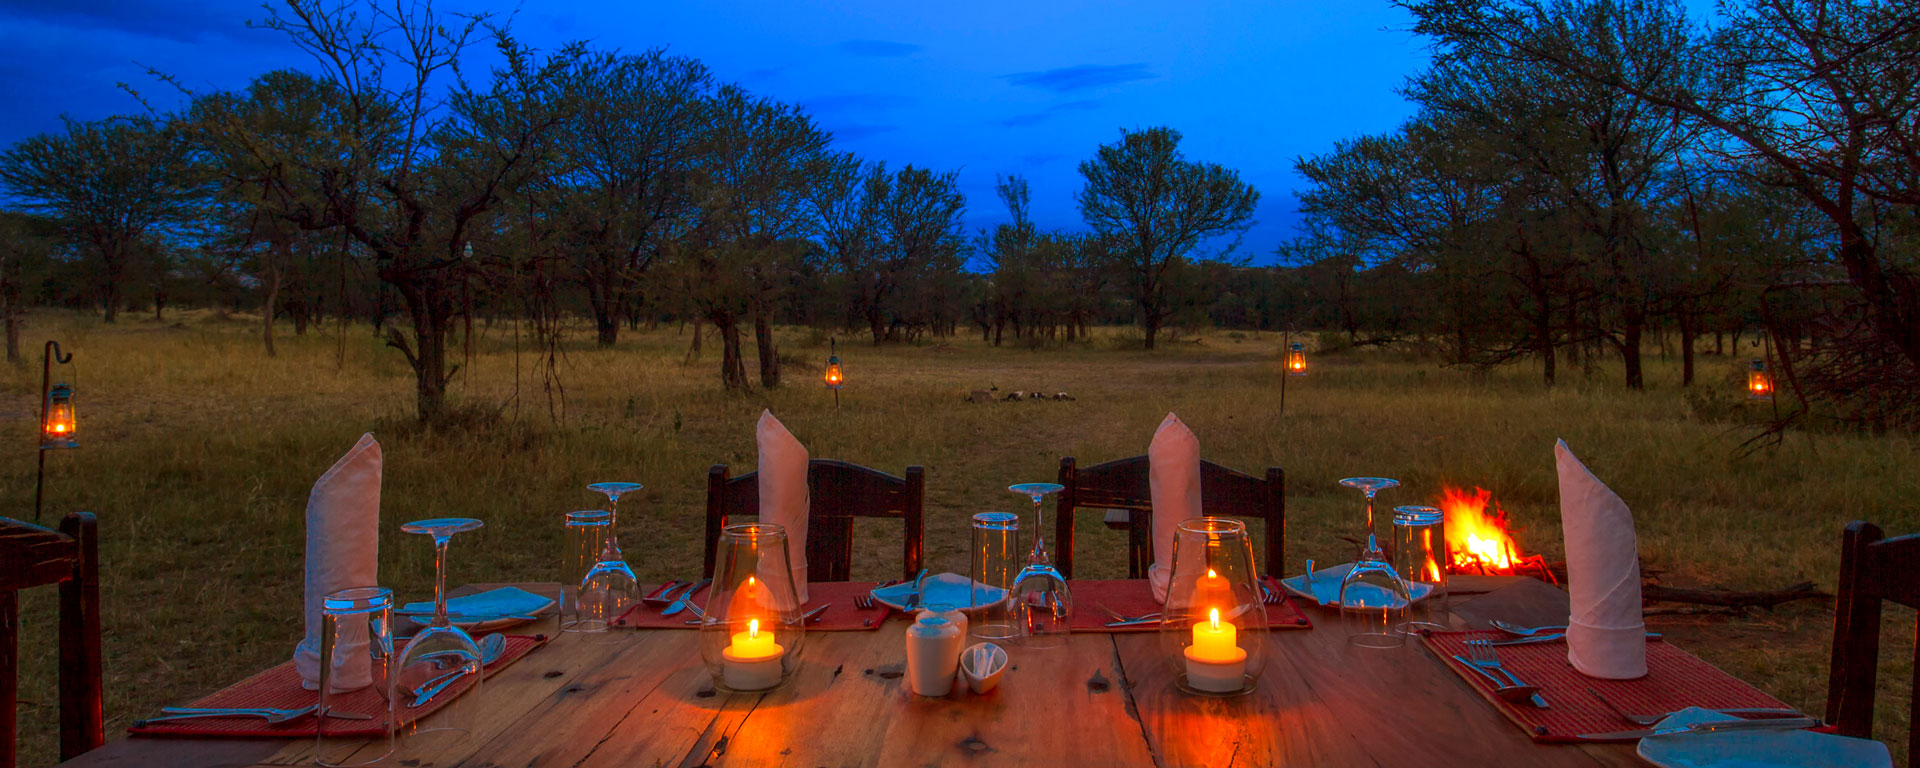 basecamp tanzania camping safari review